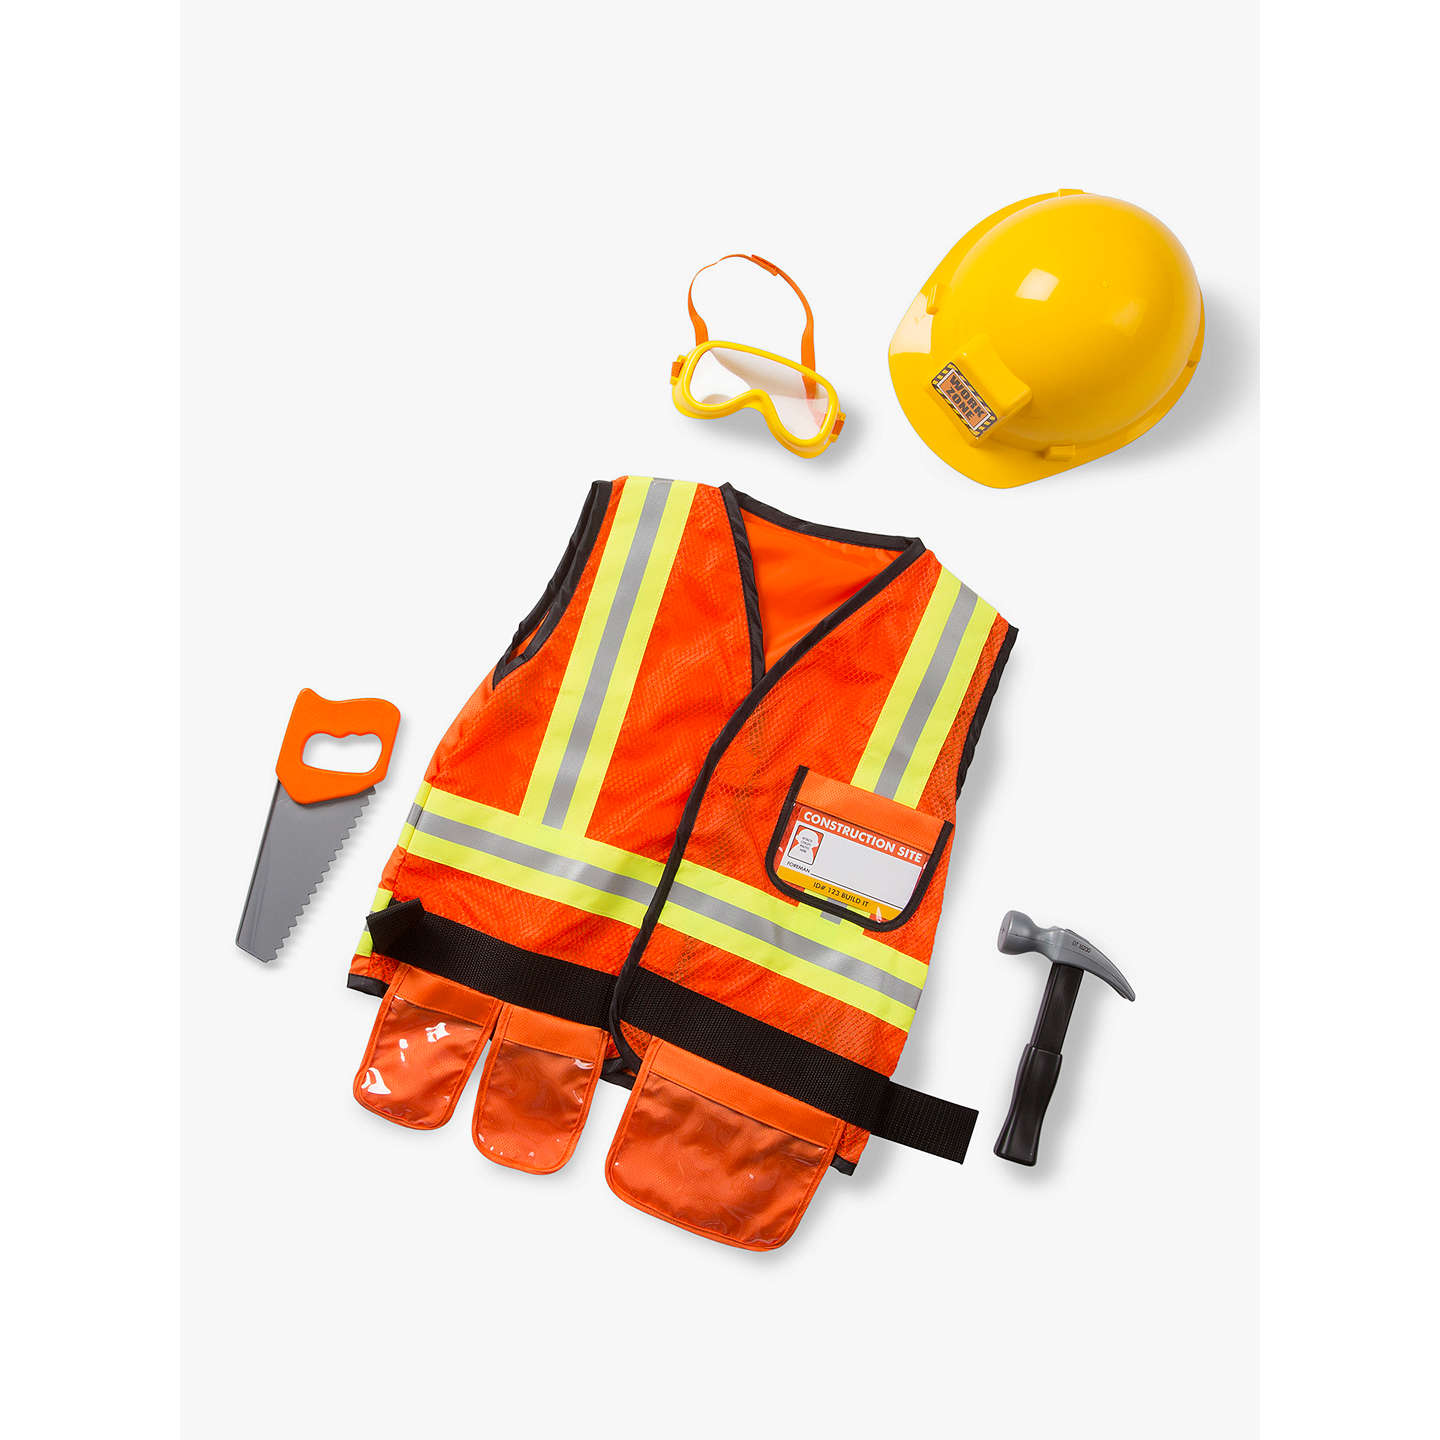 BuyMelissa & Doug Construction Worker Costume, 3-6 years Online at johnlewis.com